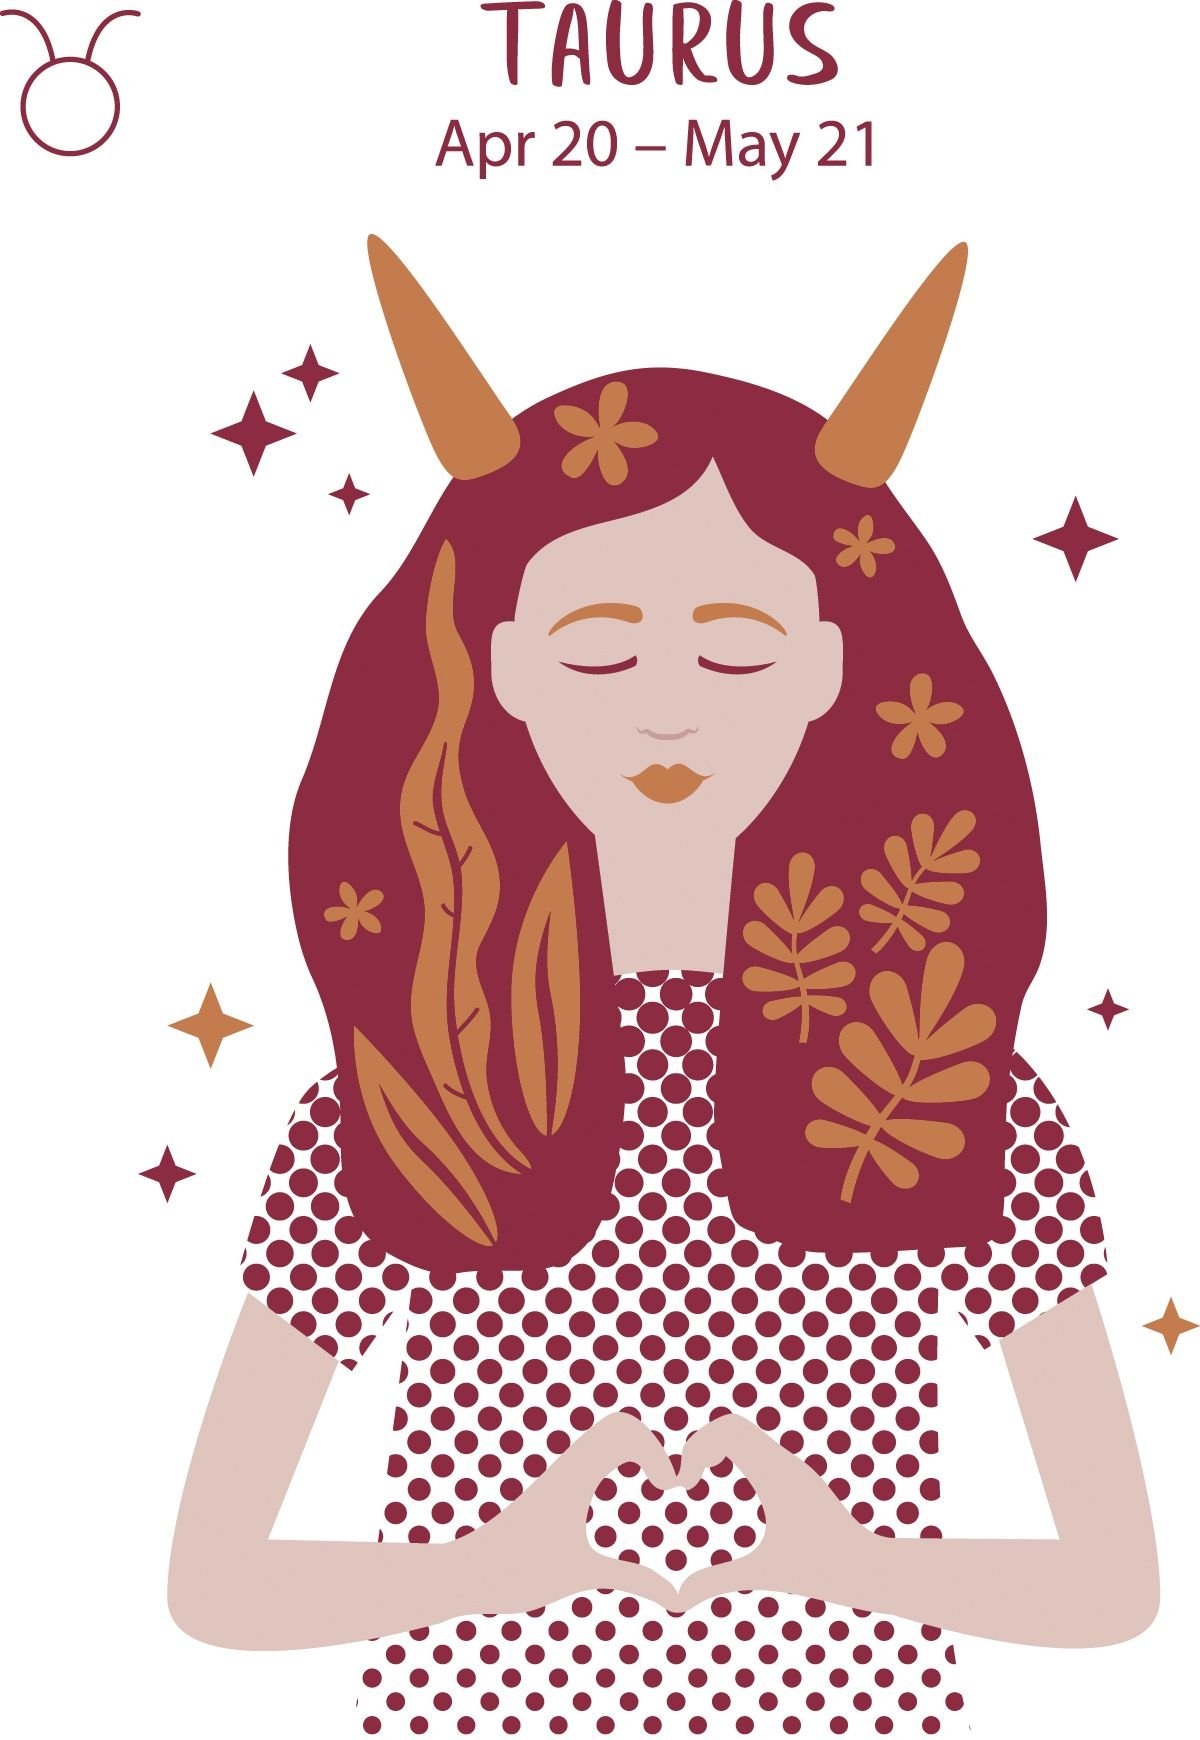 Taurus (April 20 - May 21) represented by a woman with spiked horns and foliage in her hair.